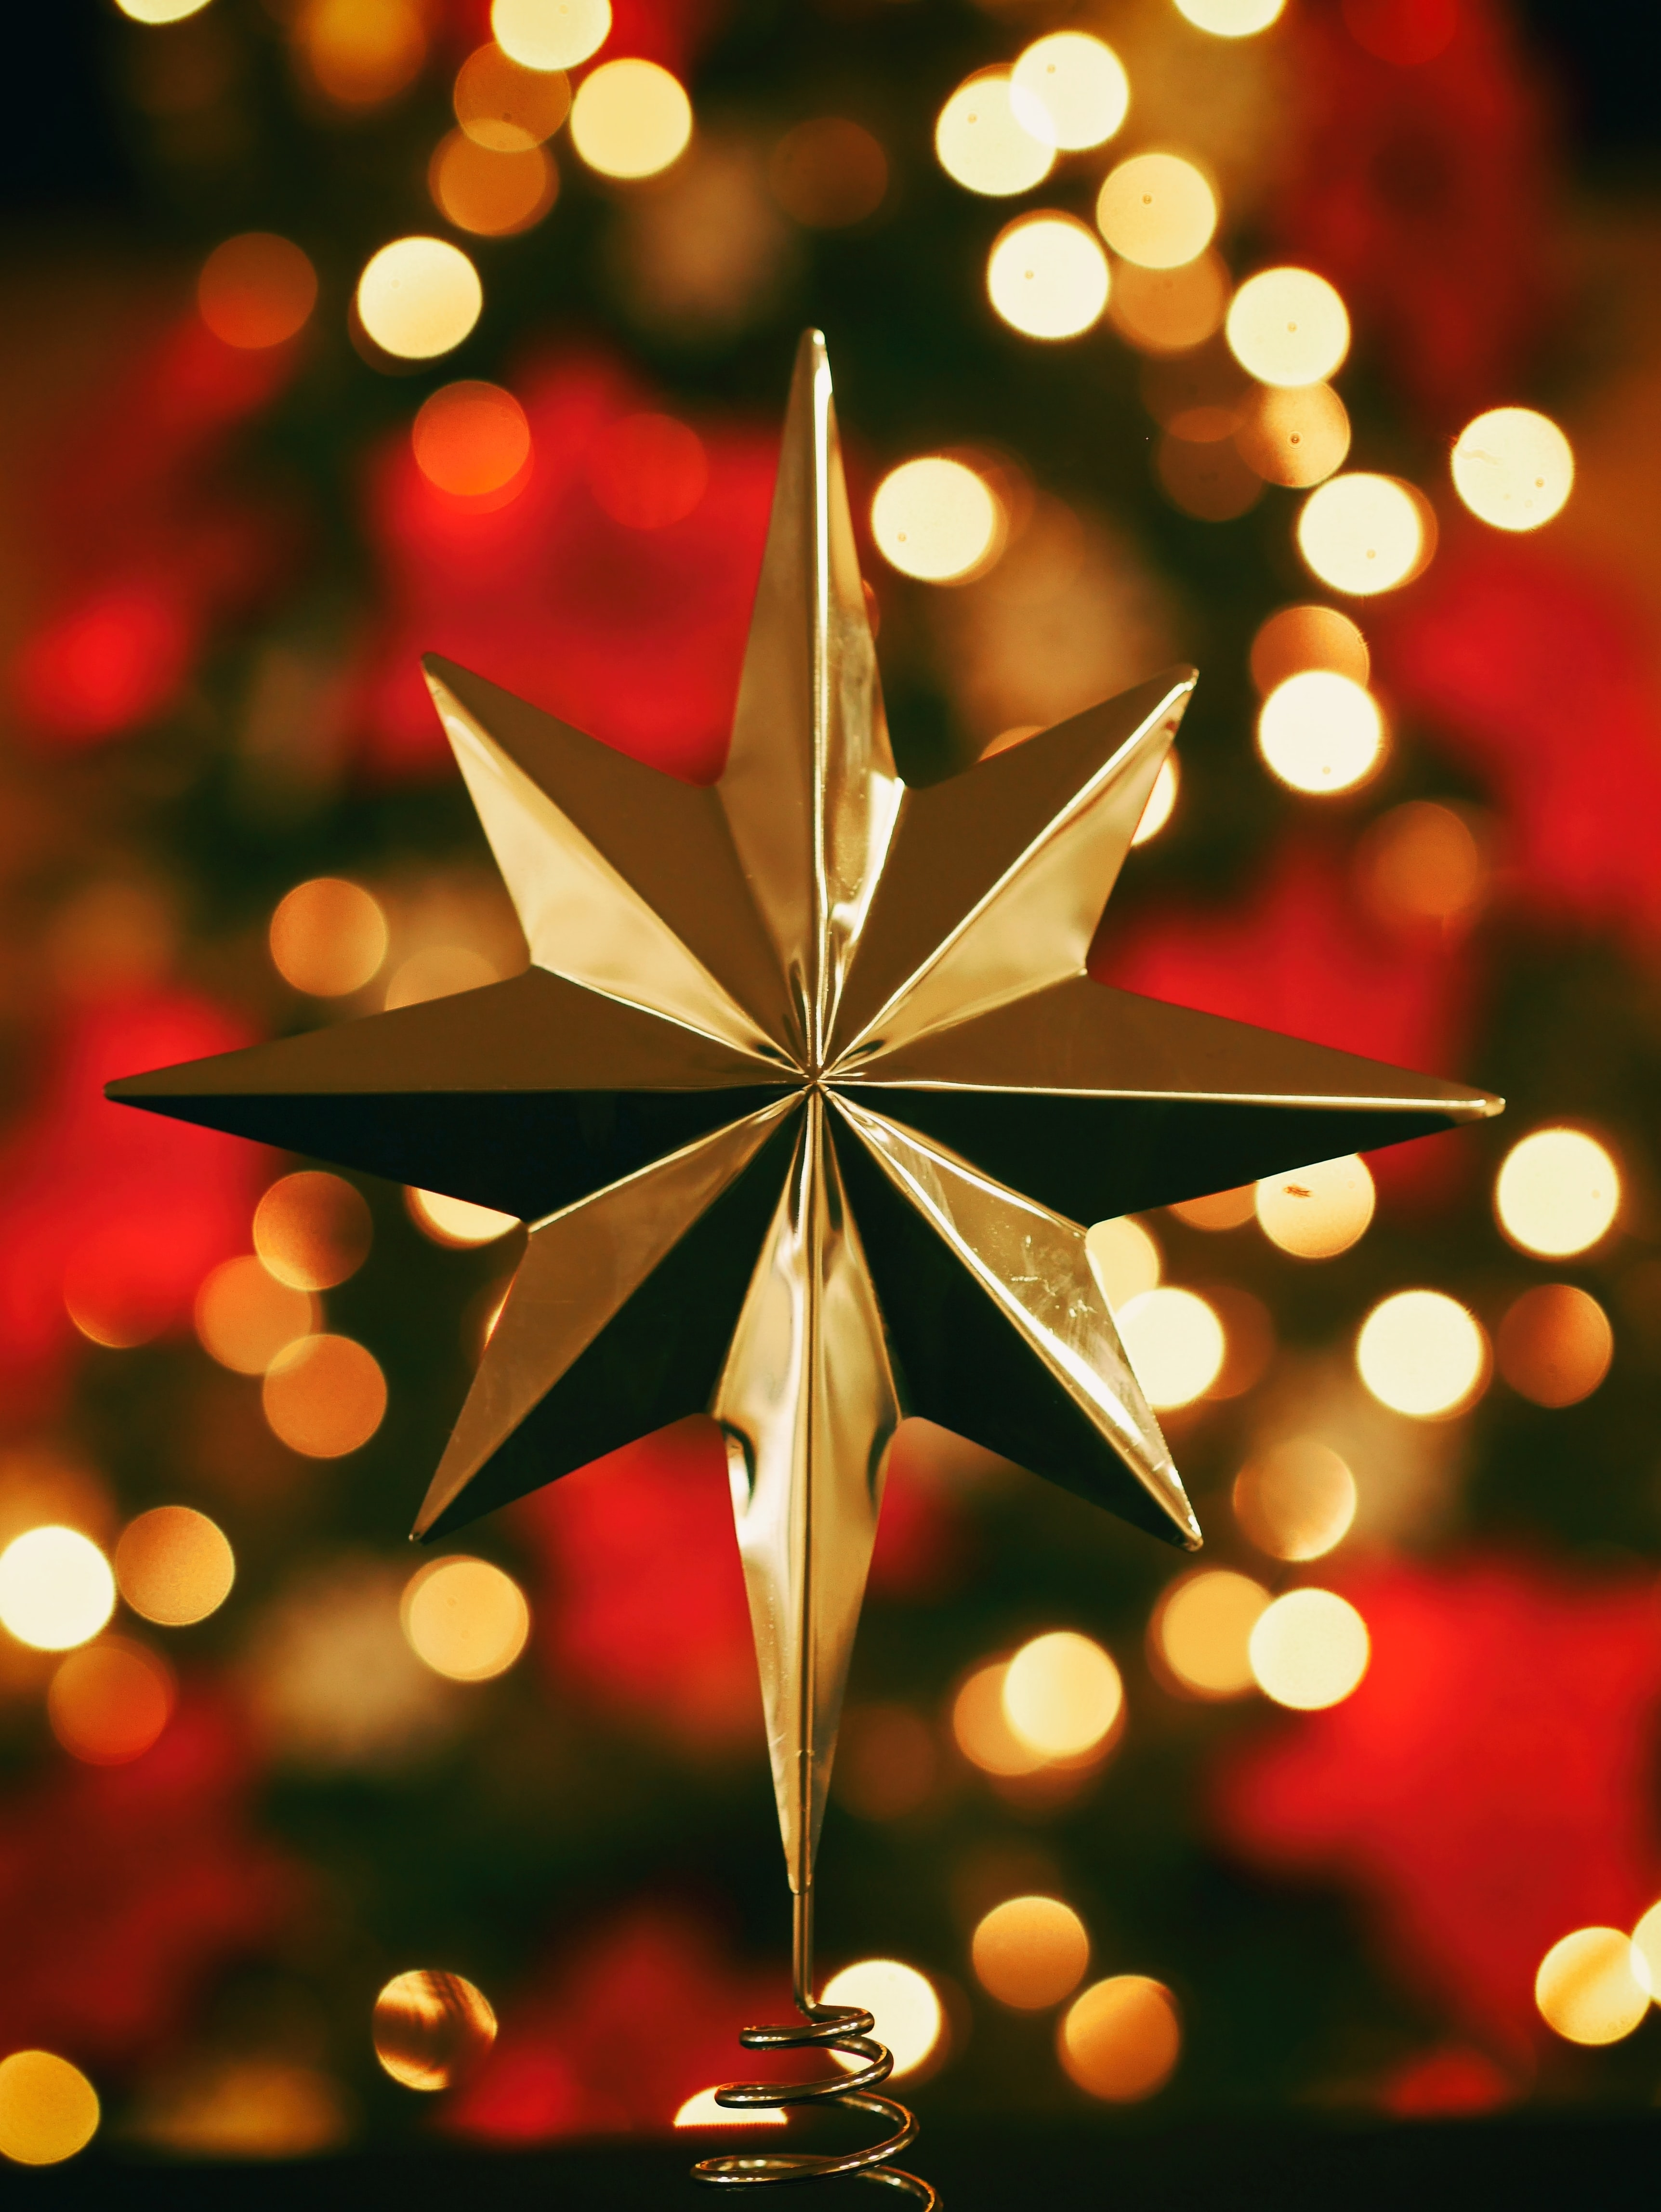 Single gold star in center with unfocused Christmas lights and flowers behind at Christmastime